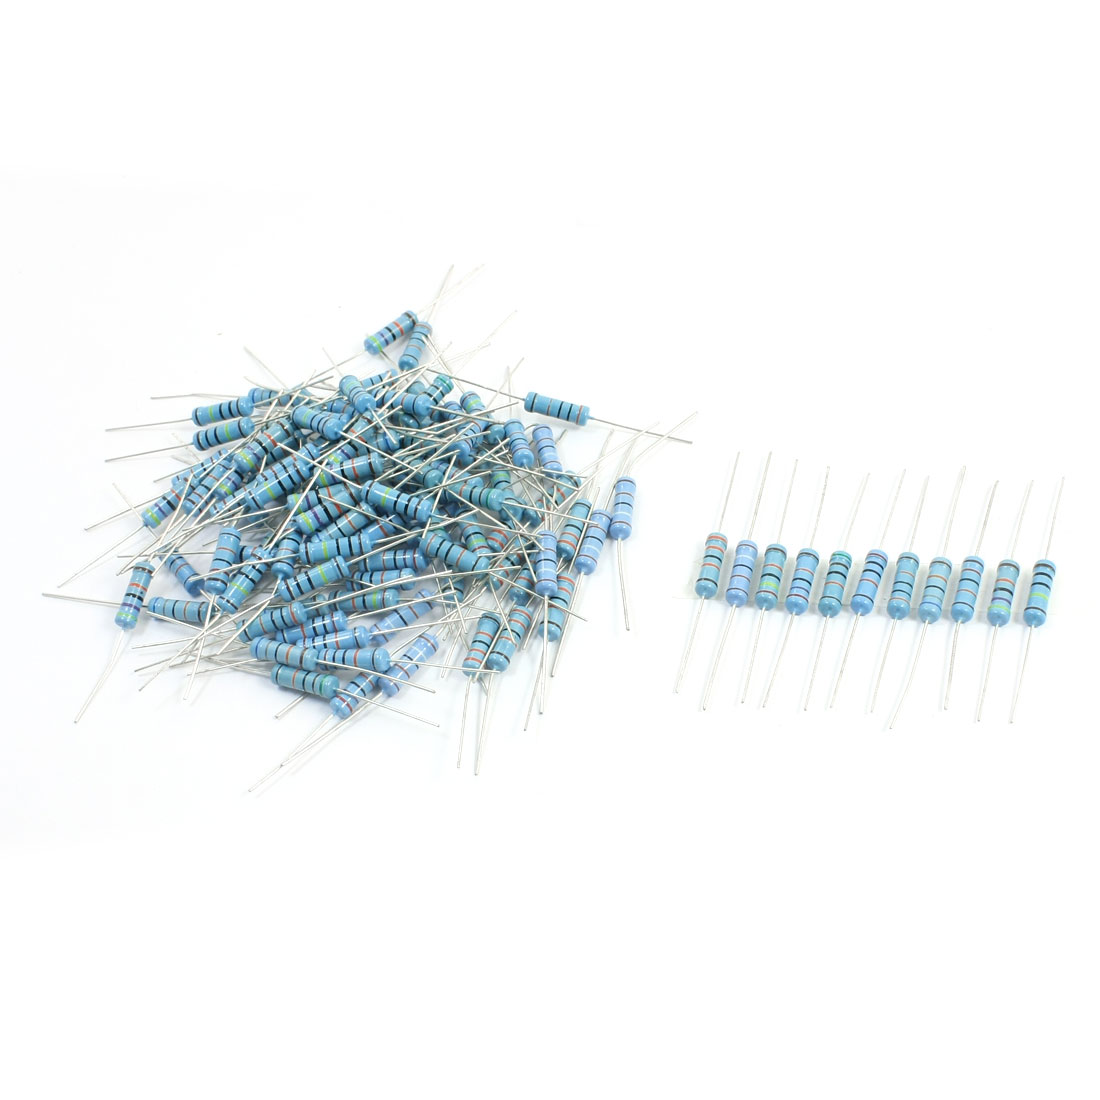 110Pcs 2W 11 Values 200K-1M Ohm 1% Tolerance Axial lead High Precision Metal Flim Resistors Assembly Kit